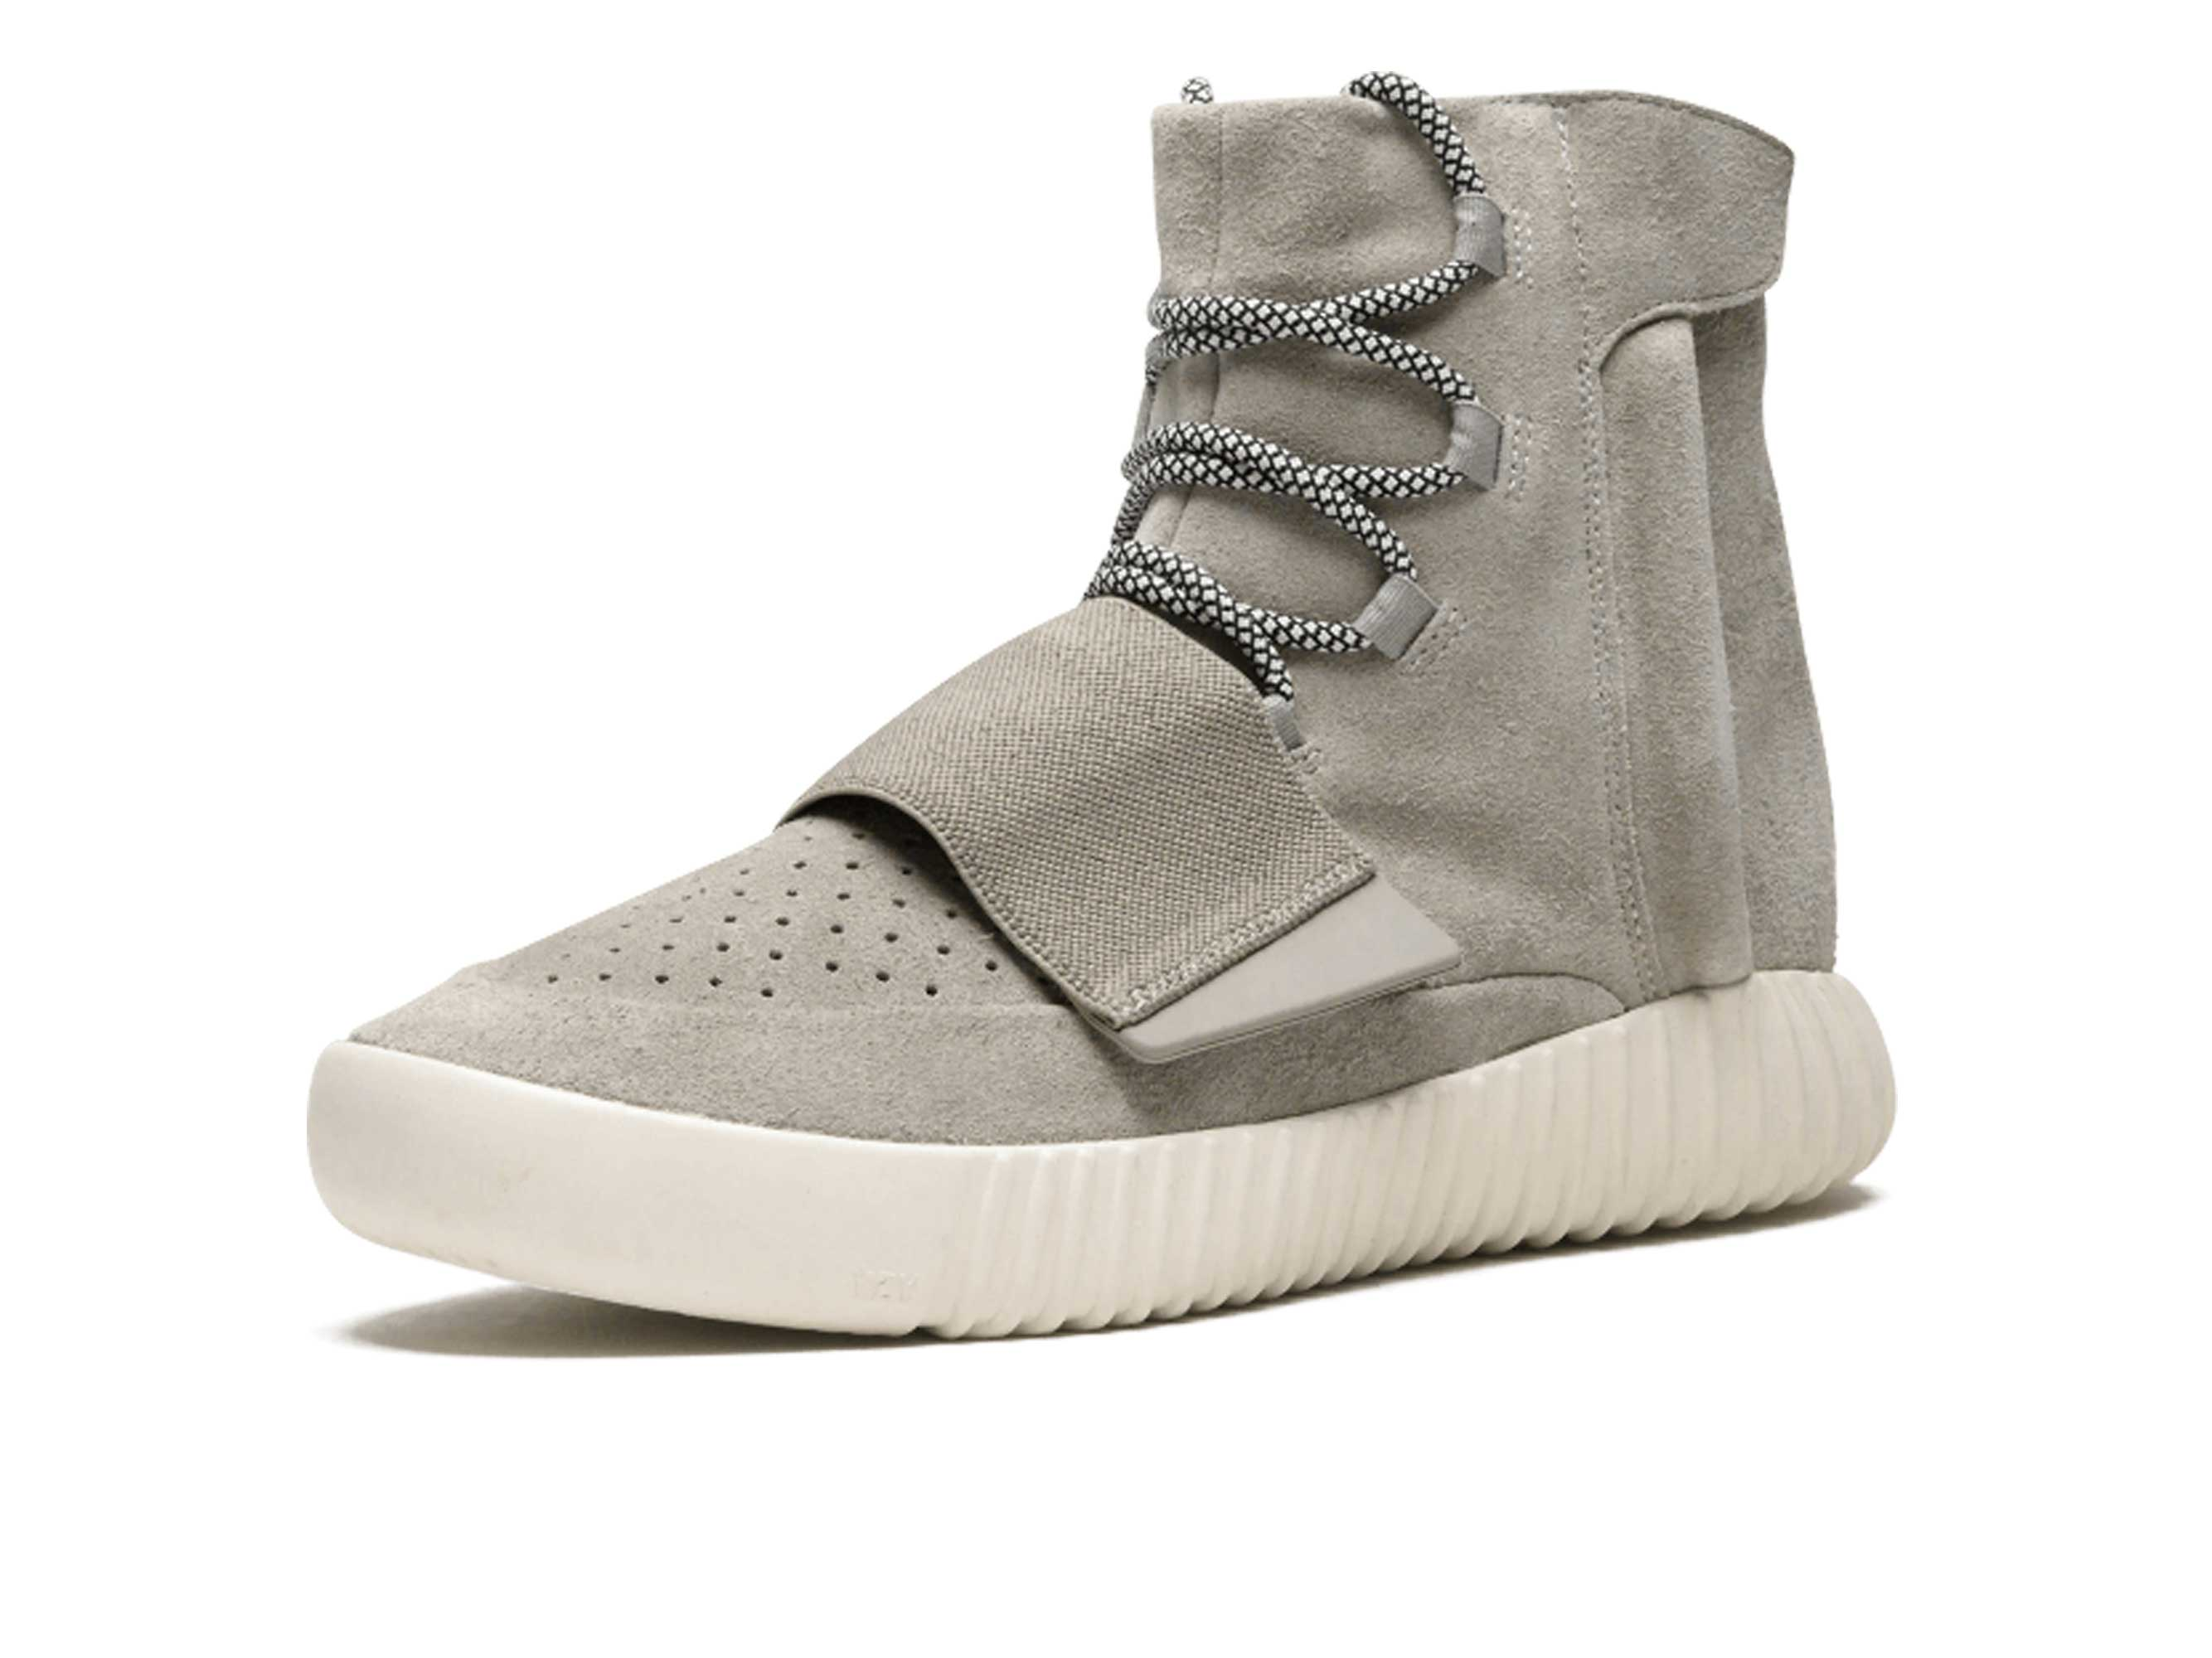 new products a4304 135e2 adidas yeezy boost 750 Kanye West grey